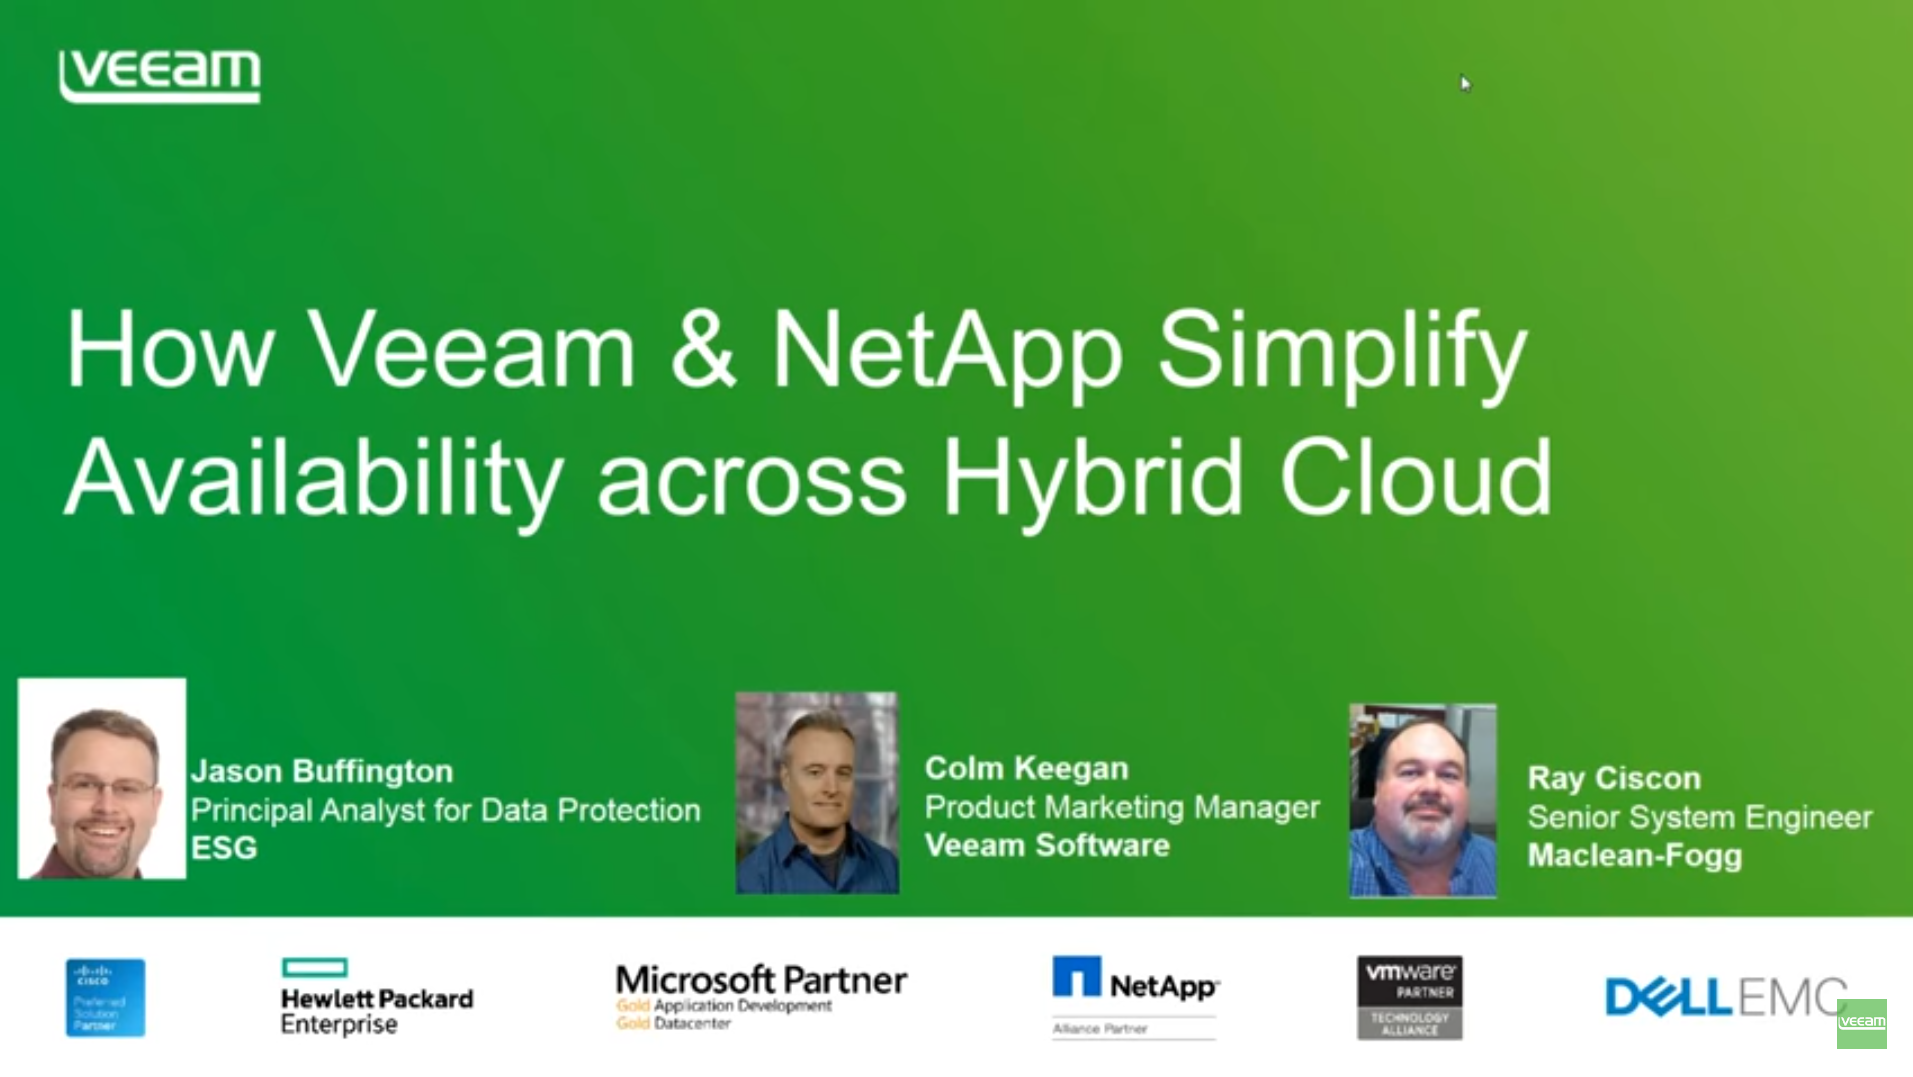 Veeam & Netapp: How to simplify hybrid cloud availability